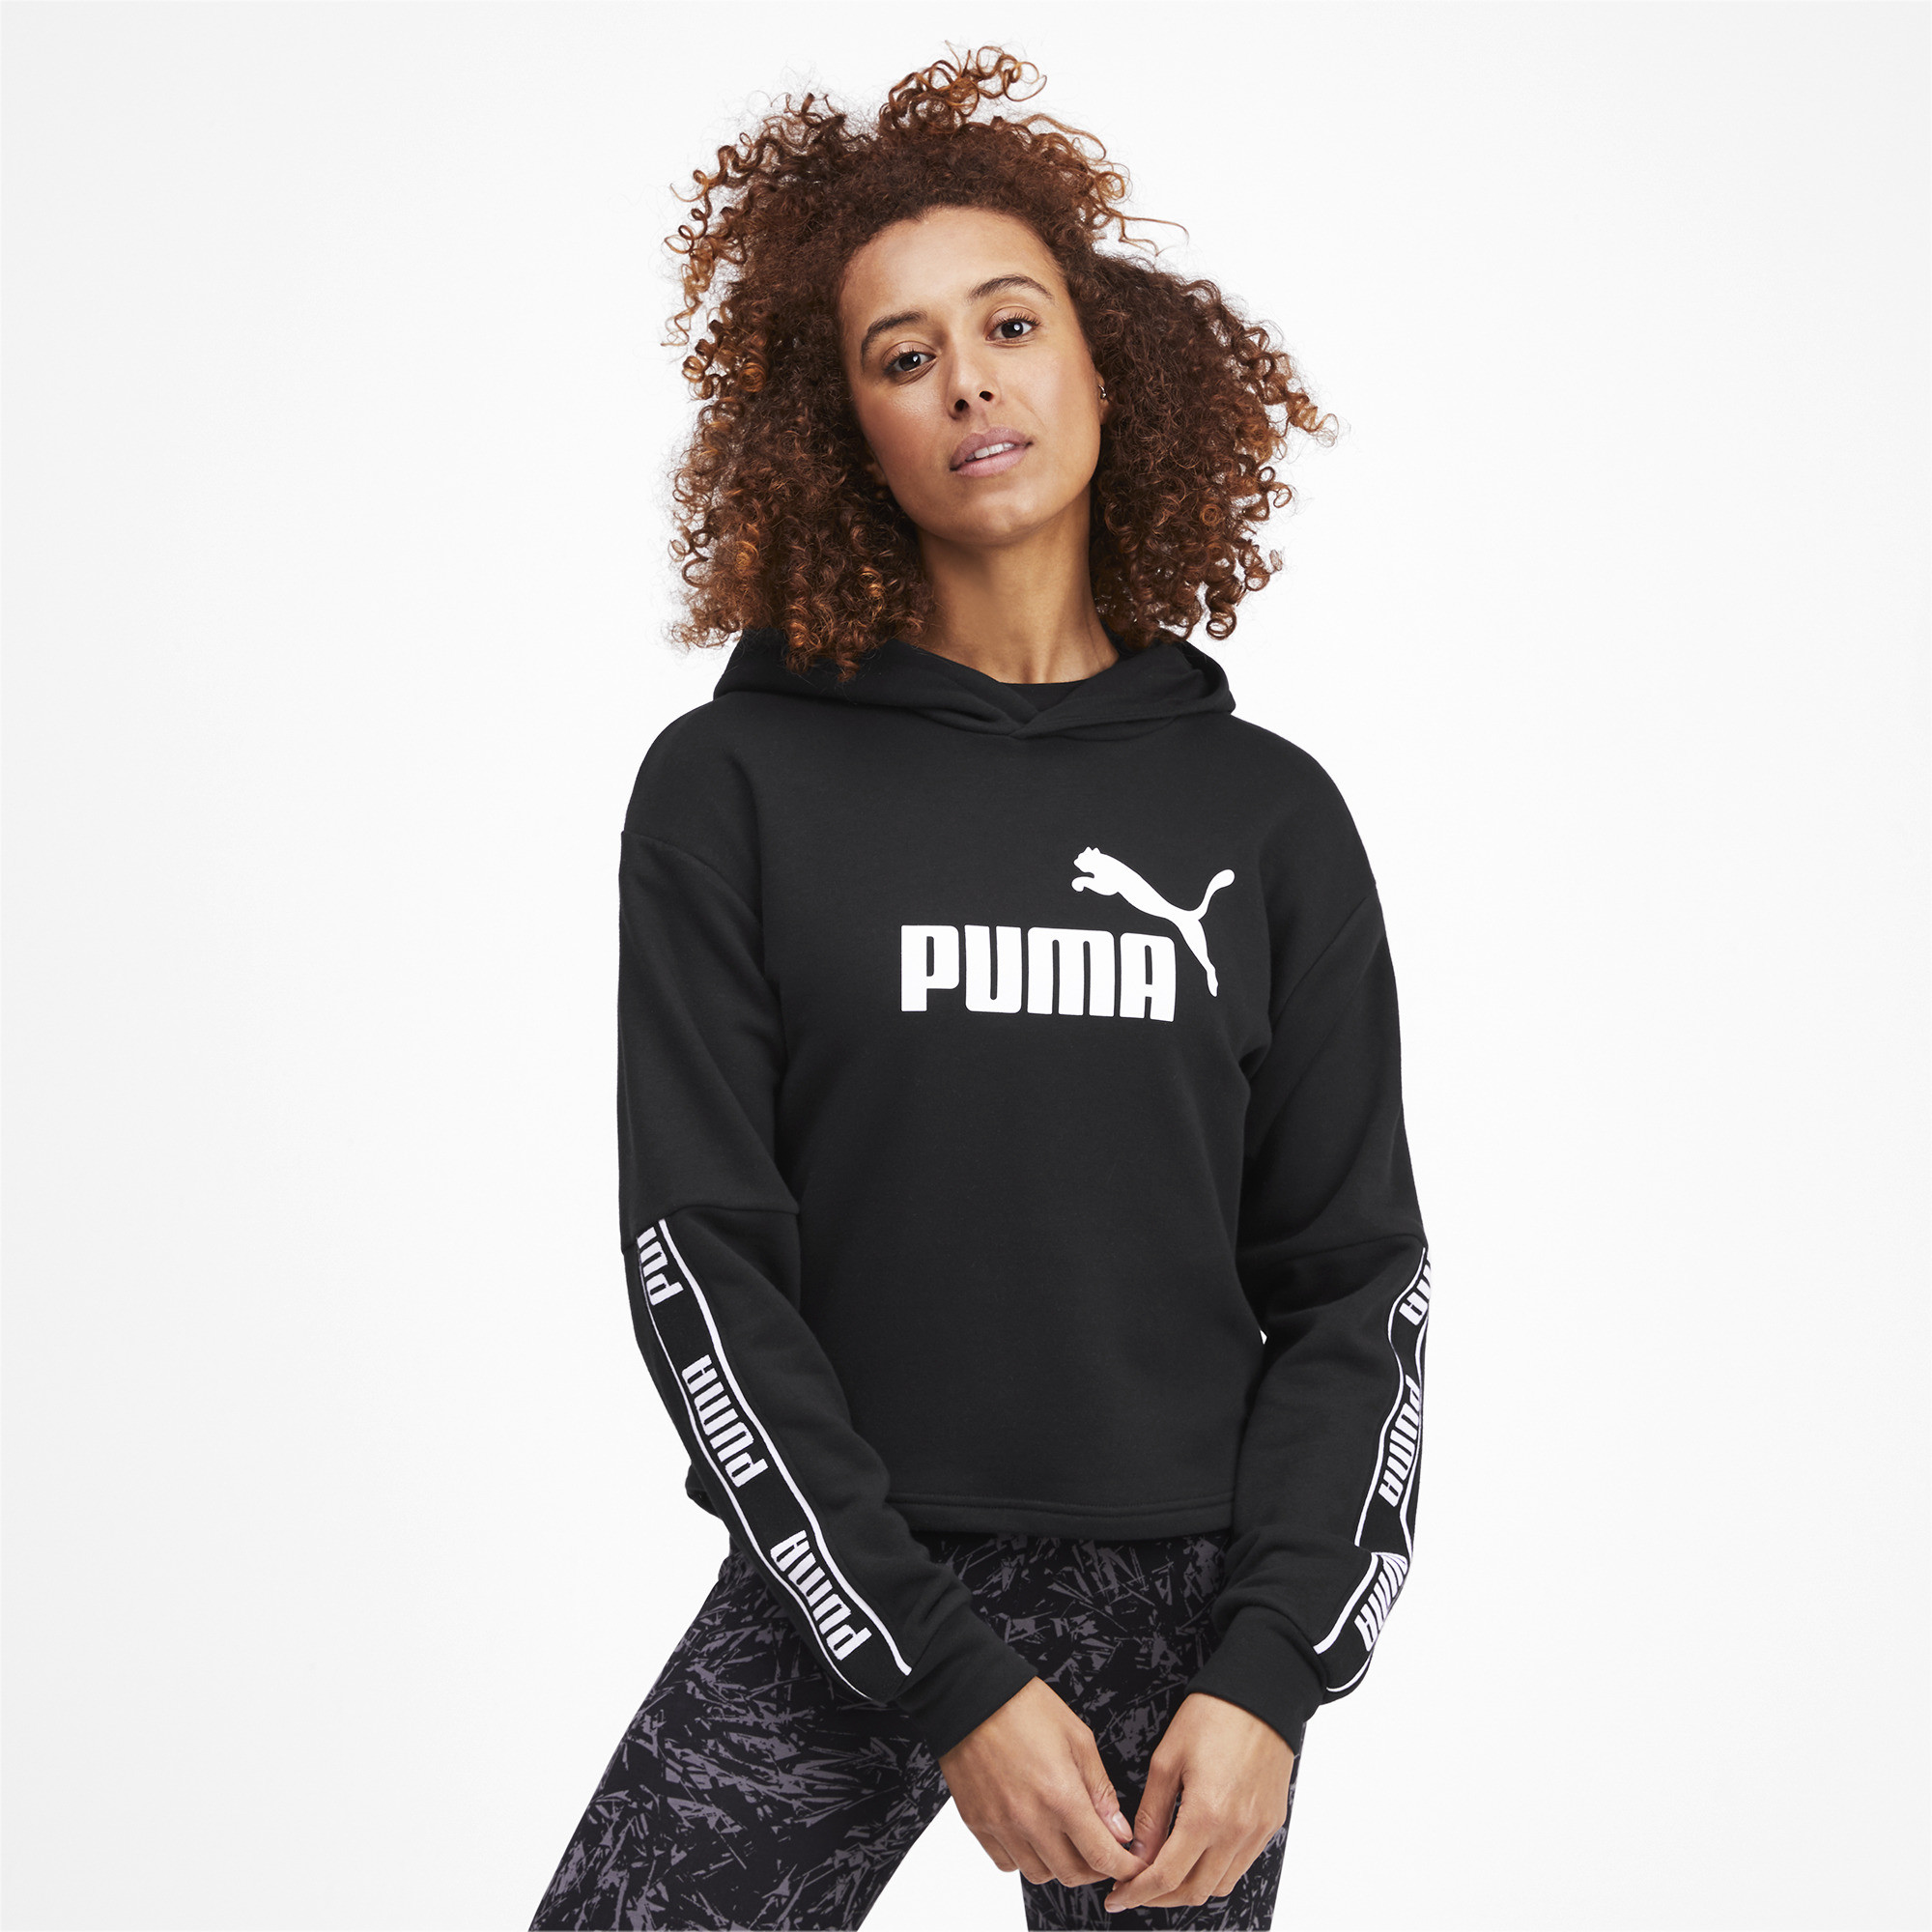 PUMA-Amplified-Women-039-s-Cropped-Hoodie-Women-Sweat-Basics thumbnail 4